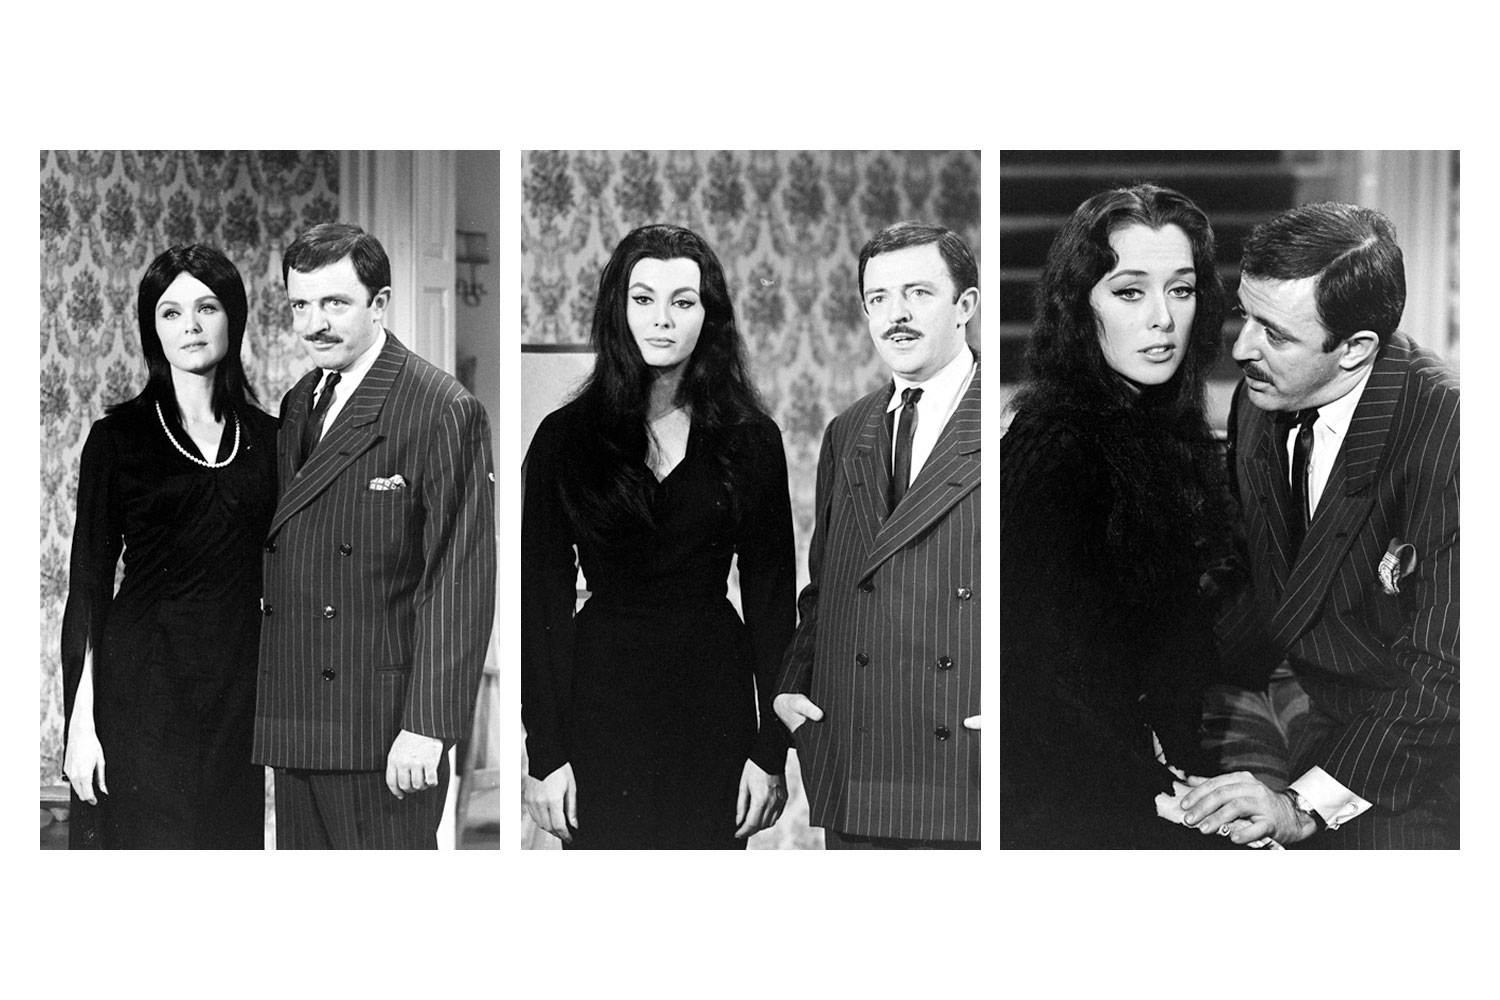 John Astin (Gomez) with various actresses auditioning for the role of Morticia Addams, 1964.